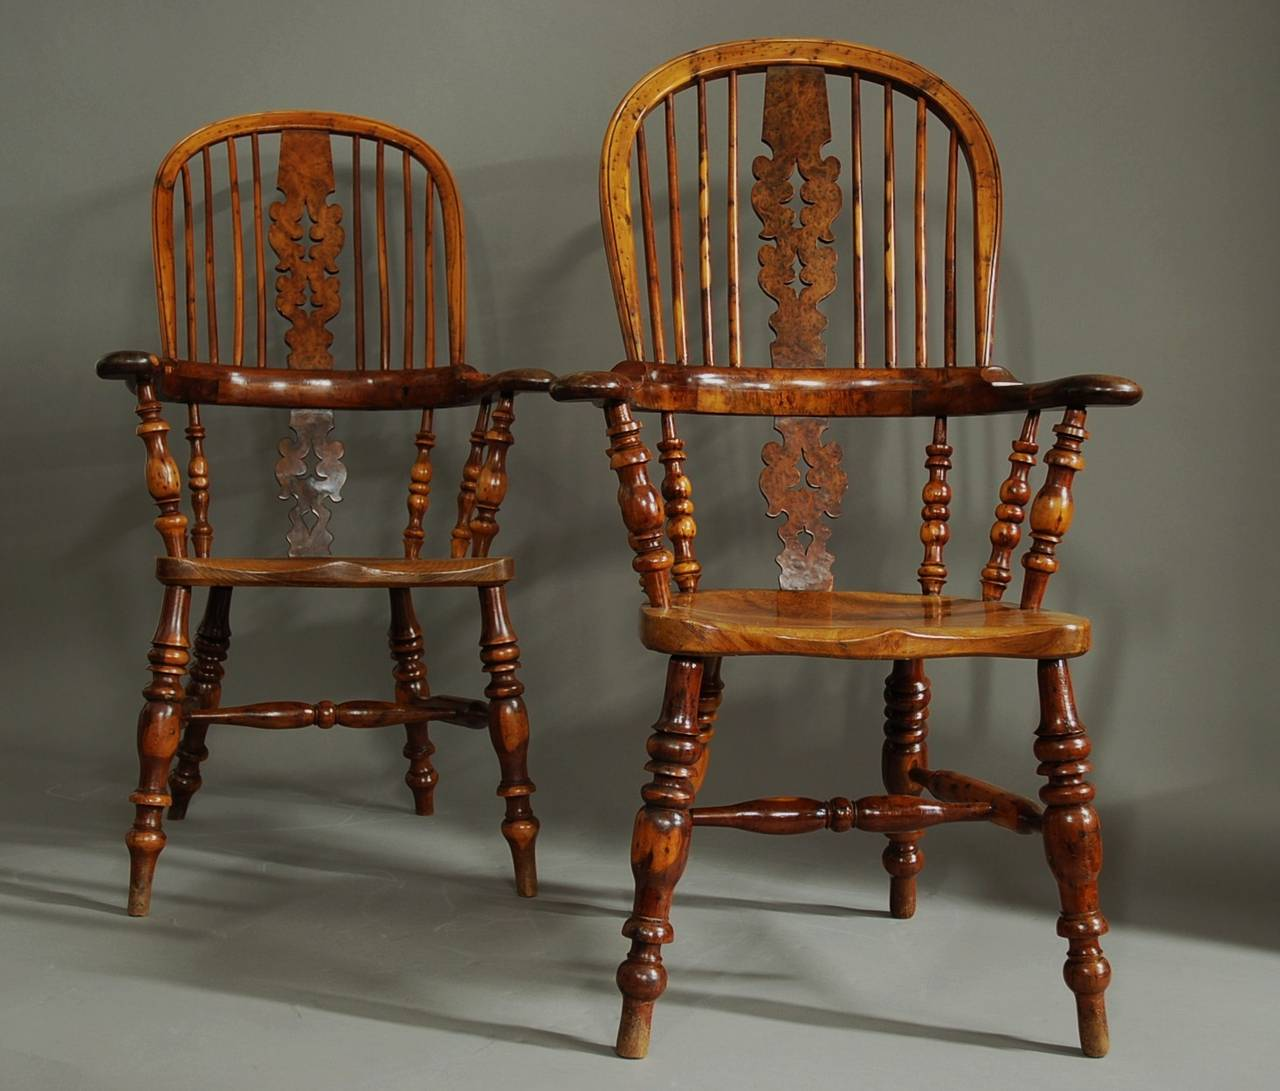 windsor back chairs for sale vinyl lawn chair webbing replacement pair of broad arm burr yew wood high